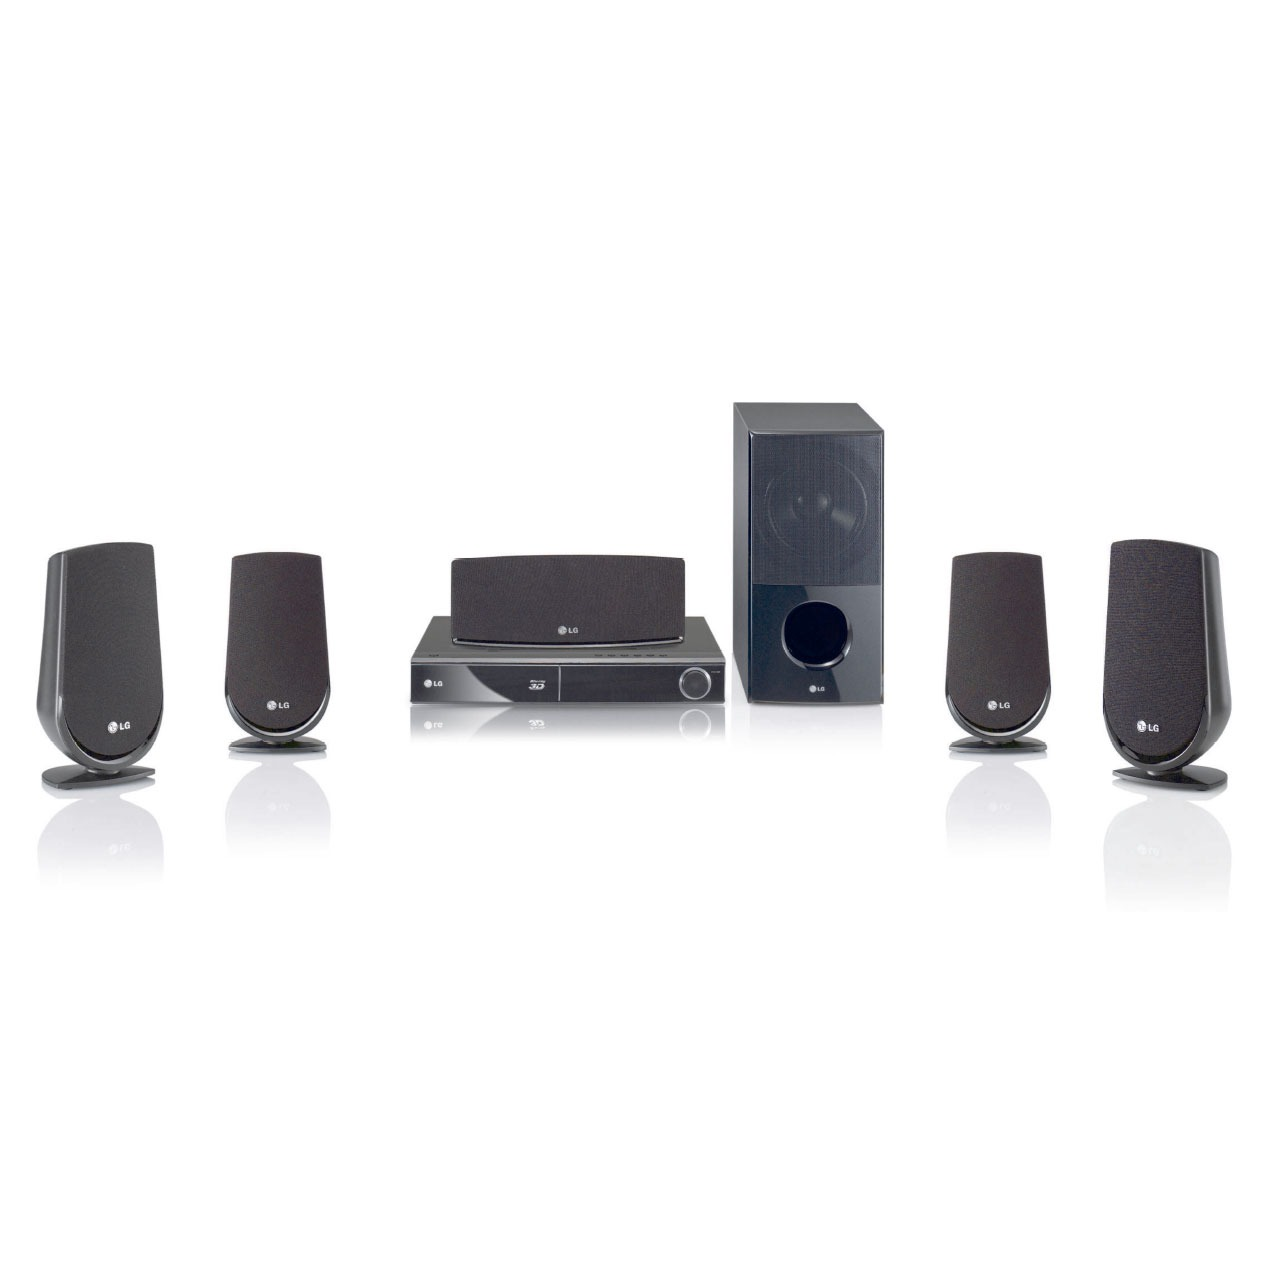 Ampli Home Cinema Sans Hdmi